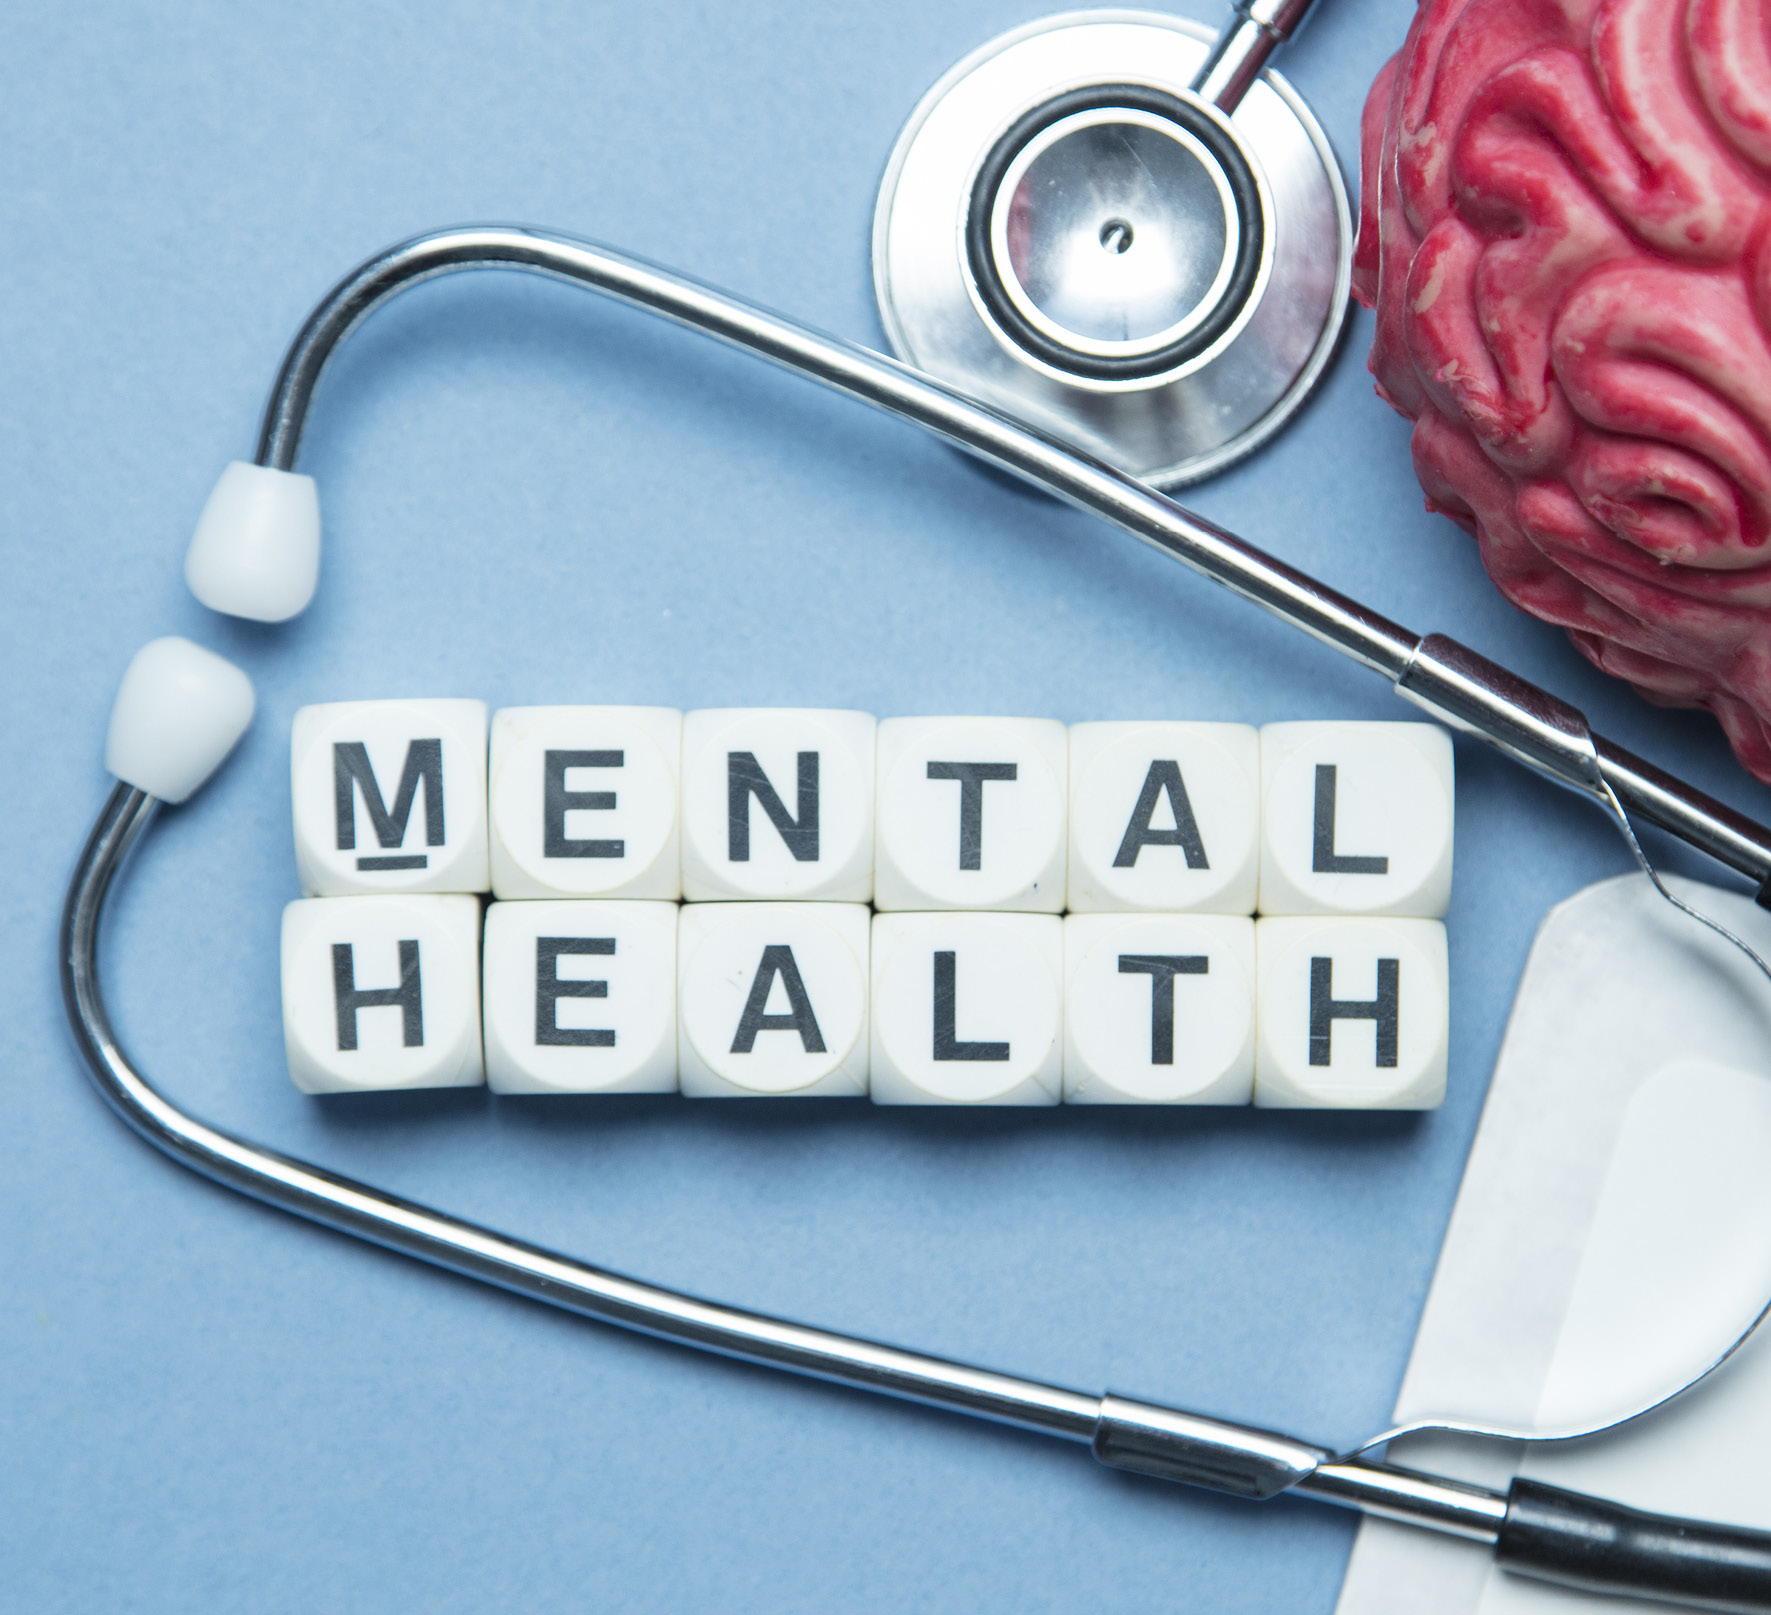 Mental Health: A Taboo That is Costing Us